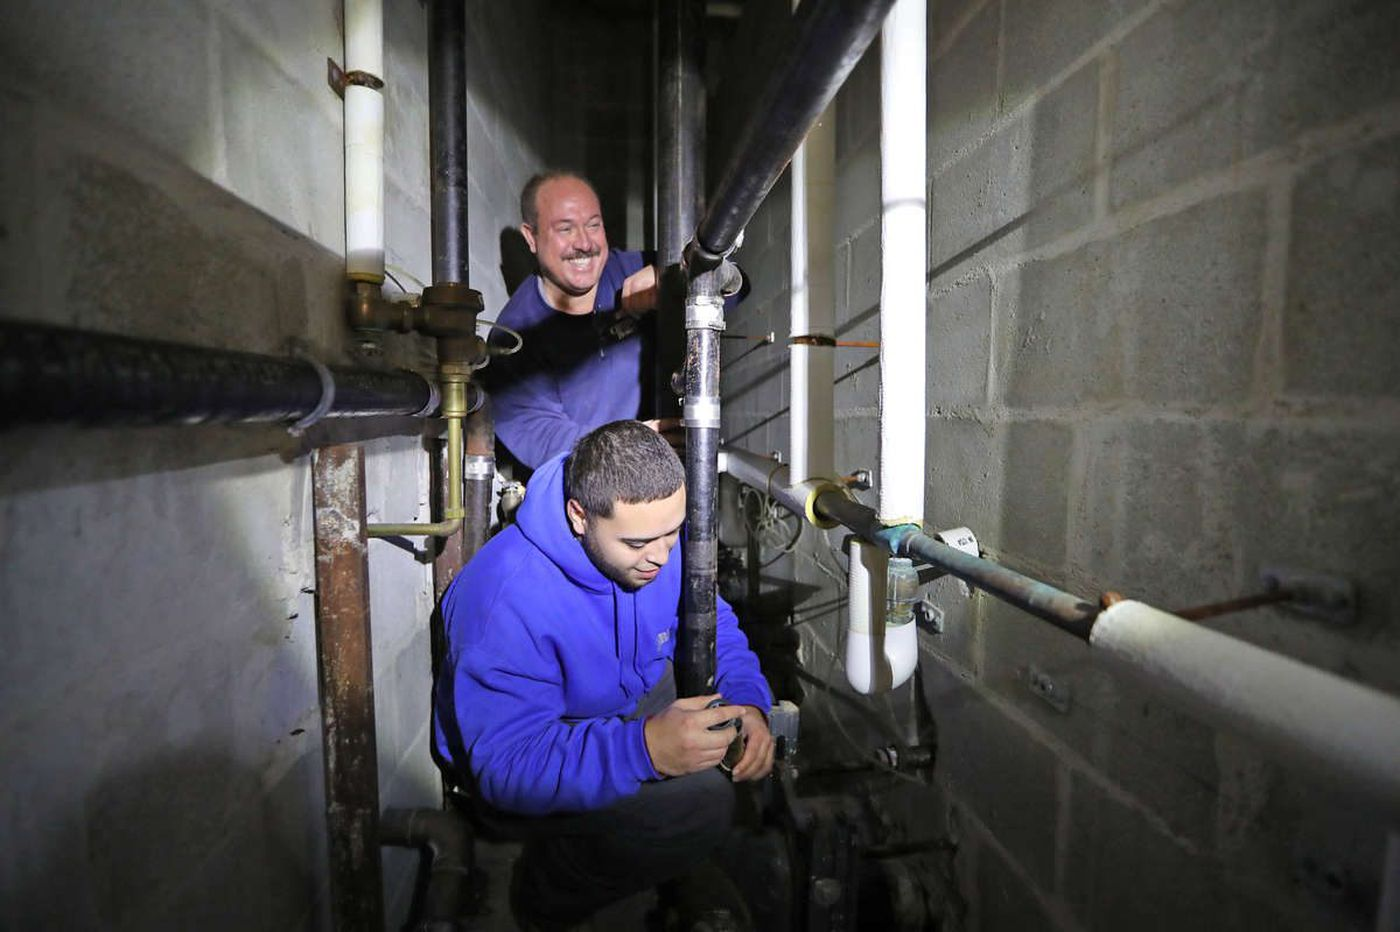 Philly schools can't hire enough plumbers. So they're growing their own